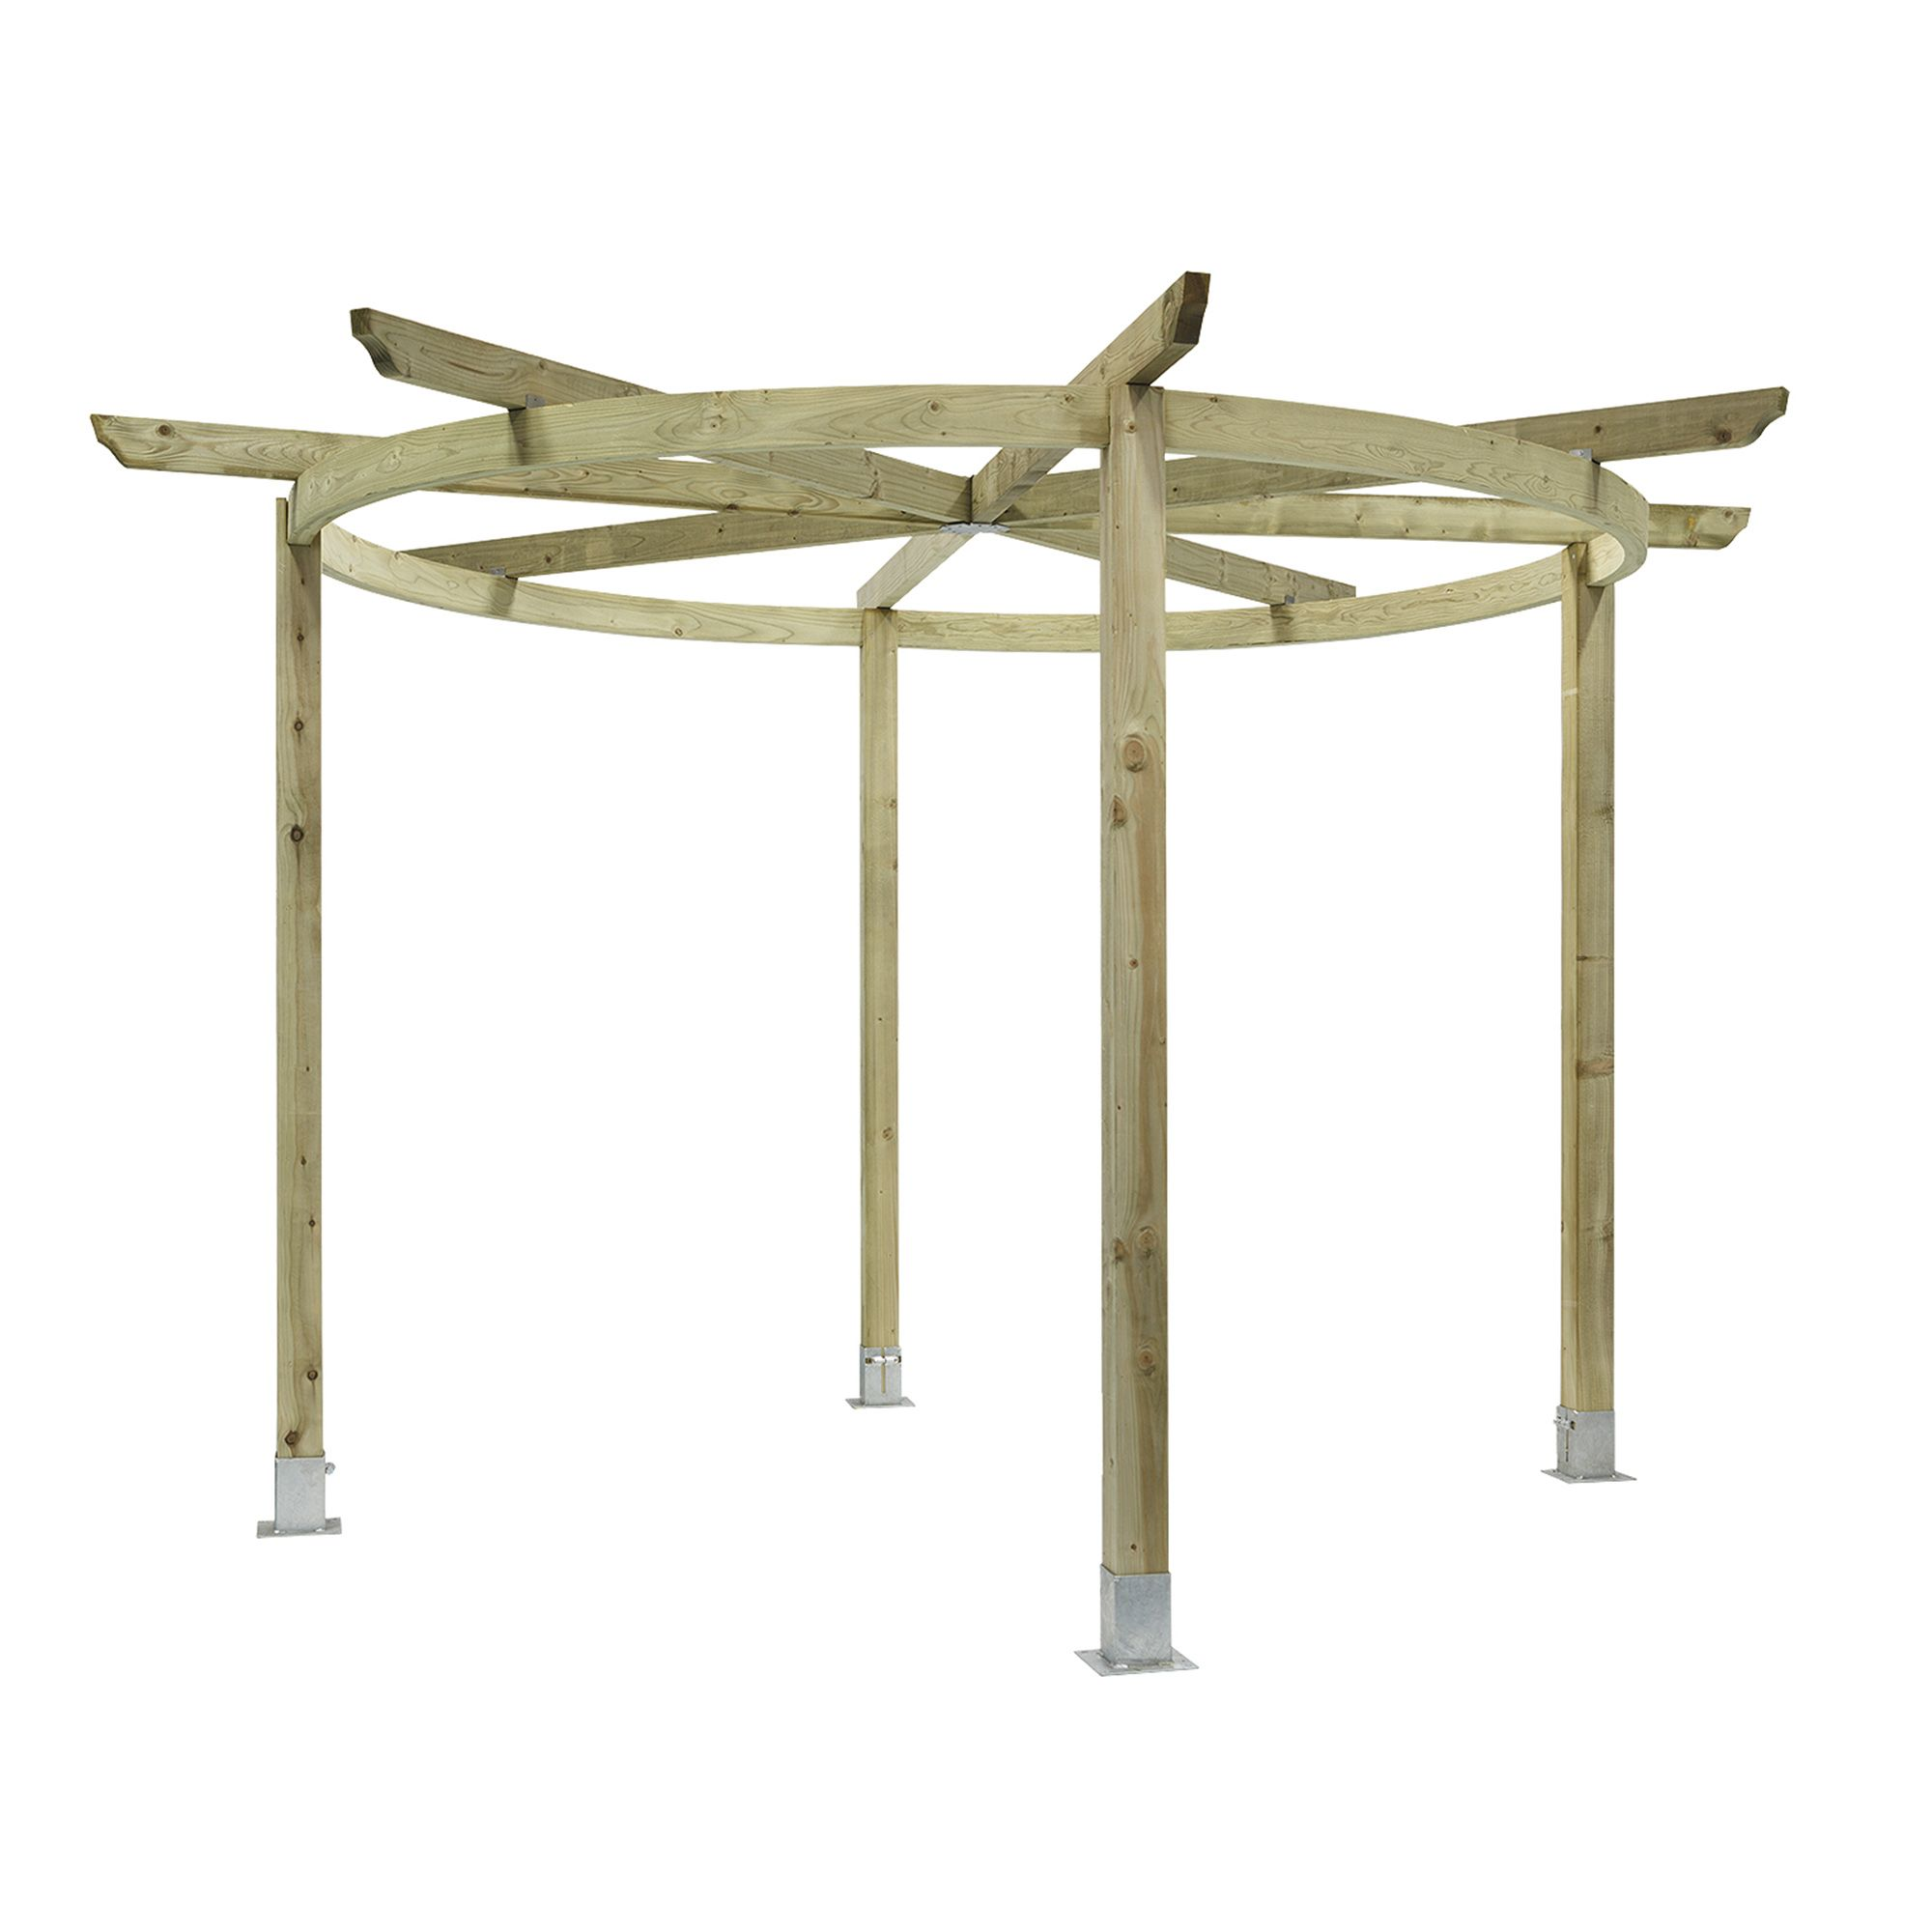 Chillington Pergola - Includes spikes for soft ground at Tesco Direct